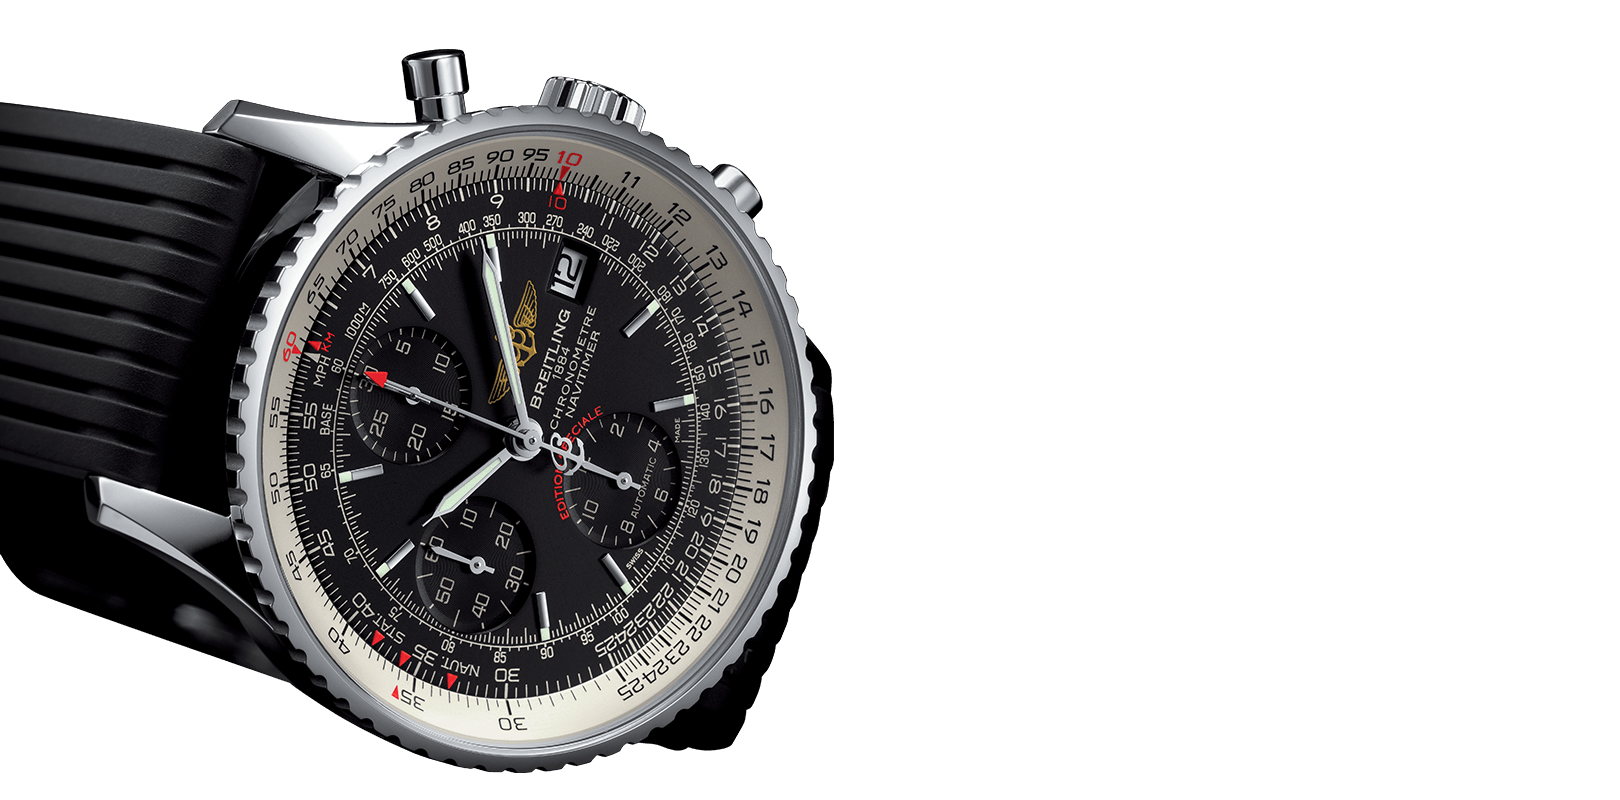 Breitling 1884 bentley motors special edition breitling for Breitling watches bentley motors special edition a25362